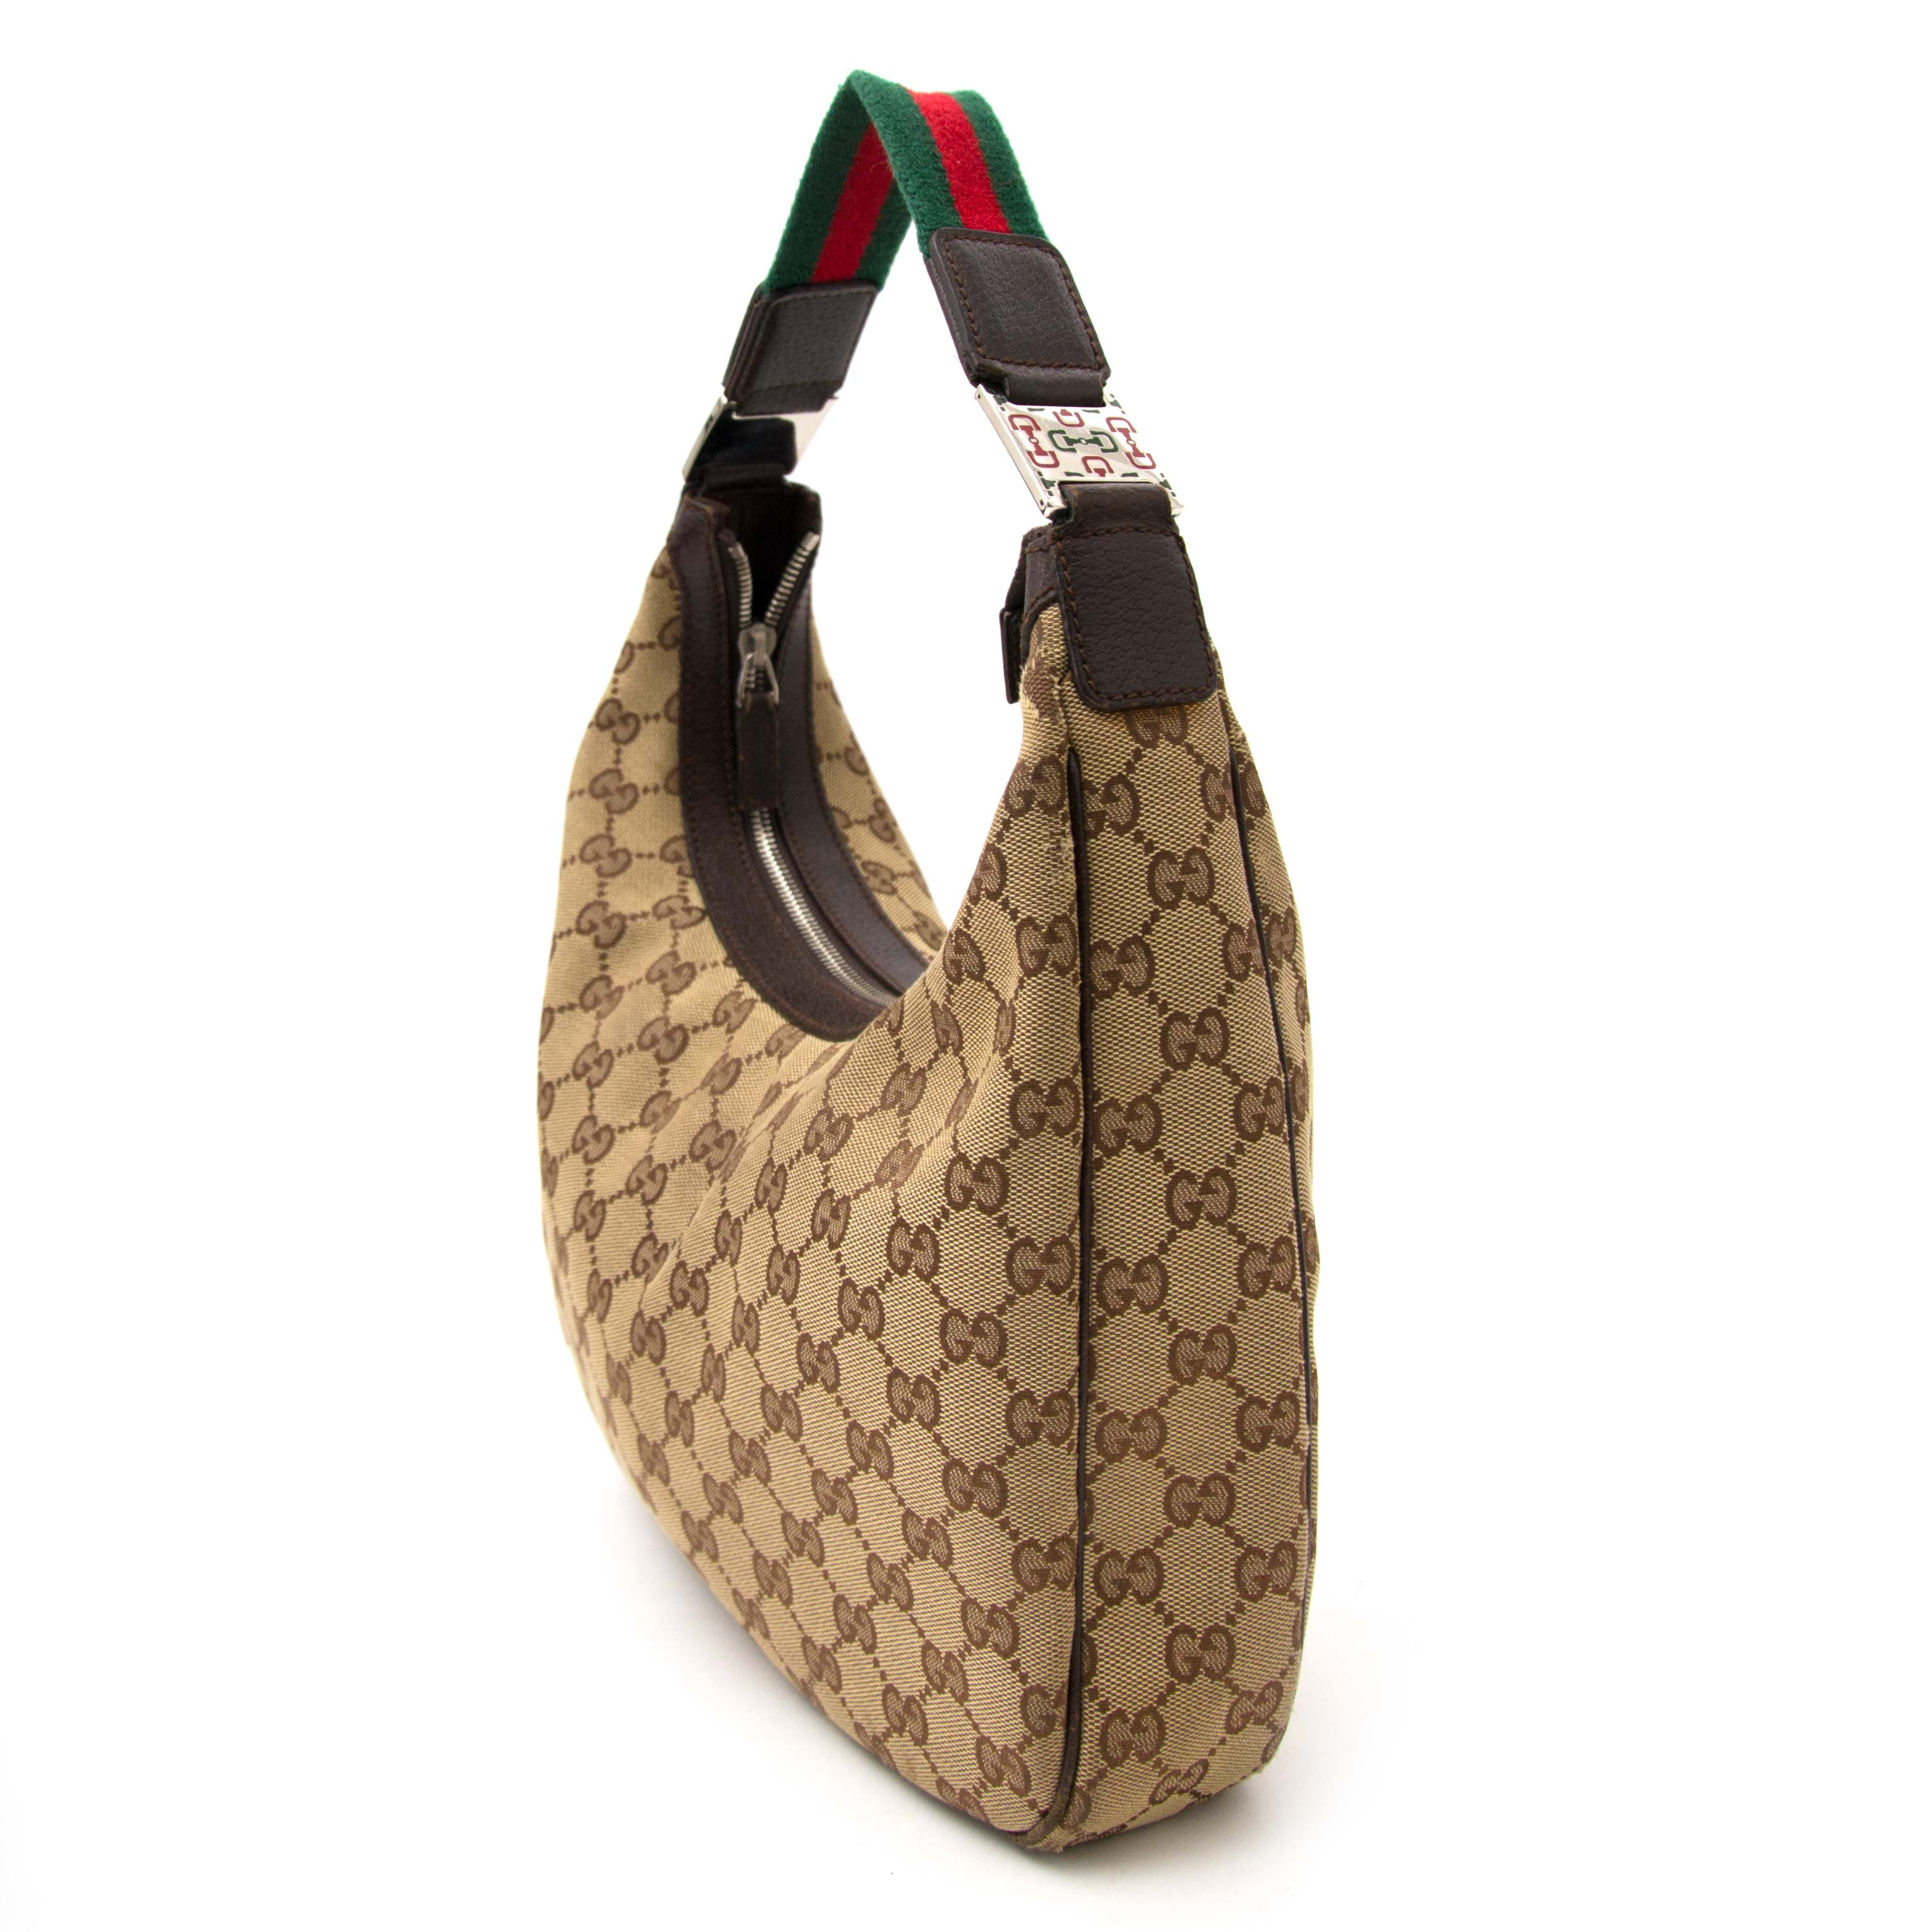 850d409a8d5 ... looking for a secondhand Gucci Monogram Fabric Green Red Stripe Hobo  Bag & Wallet